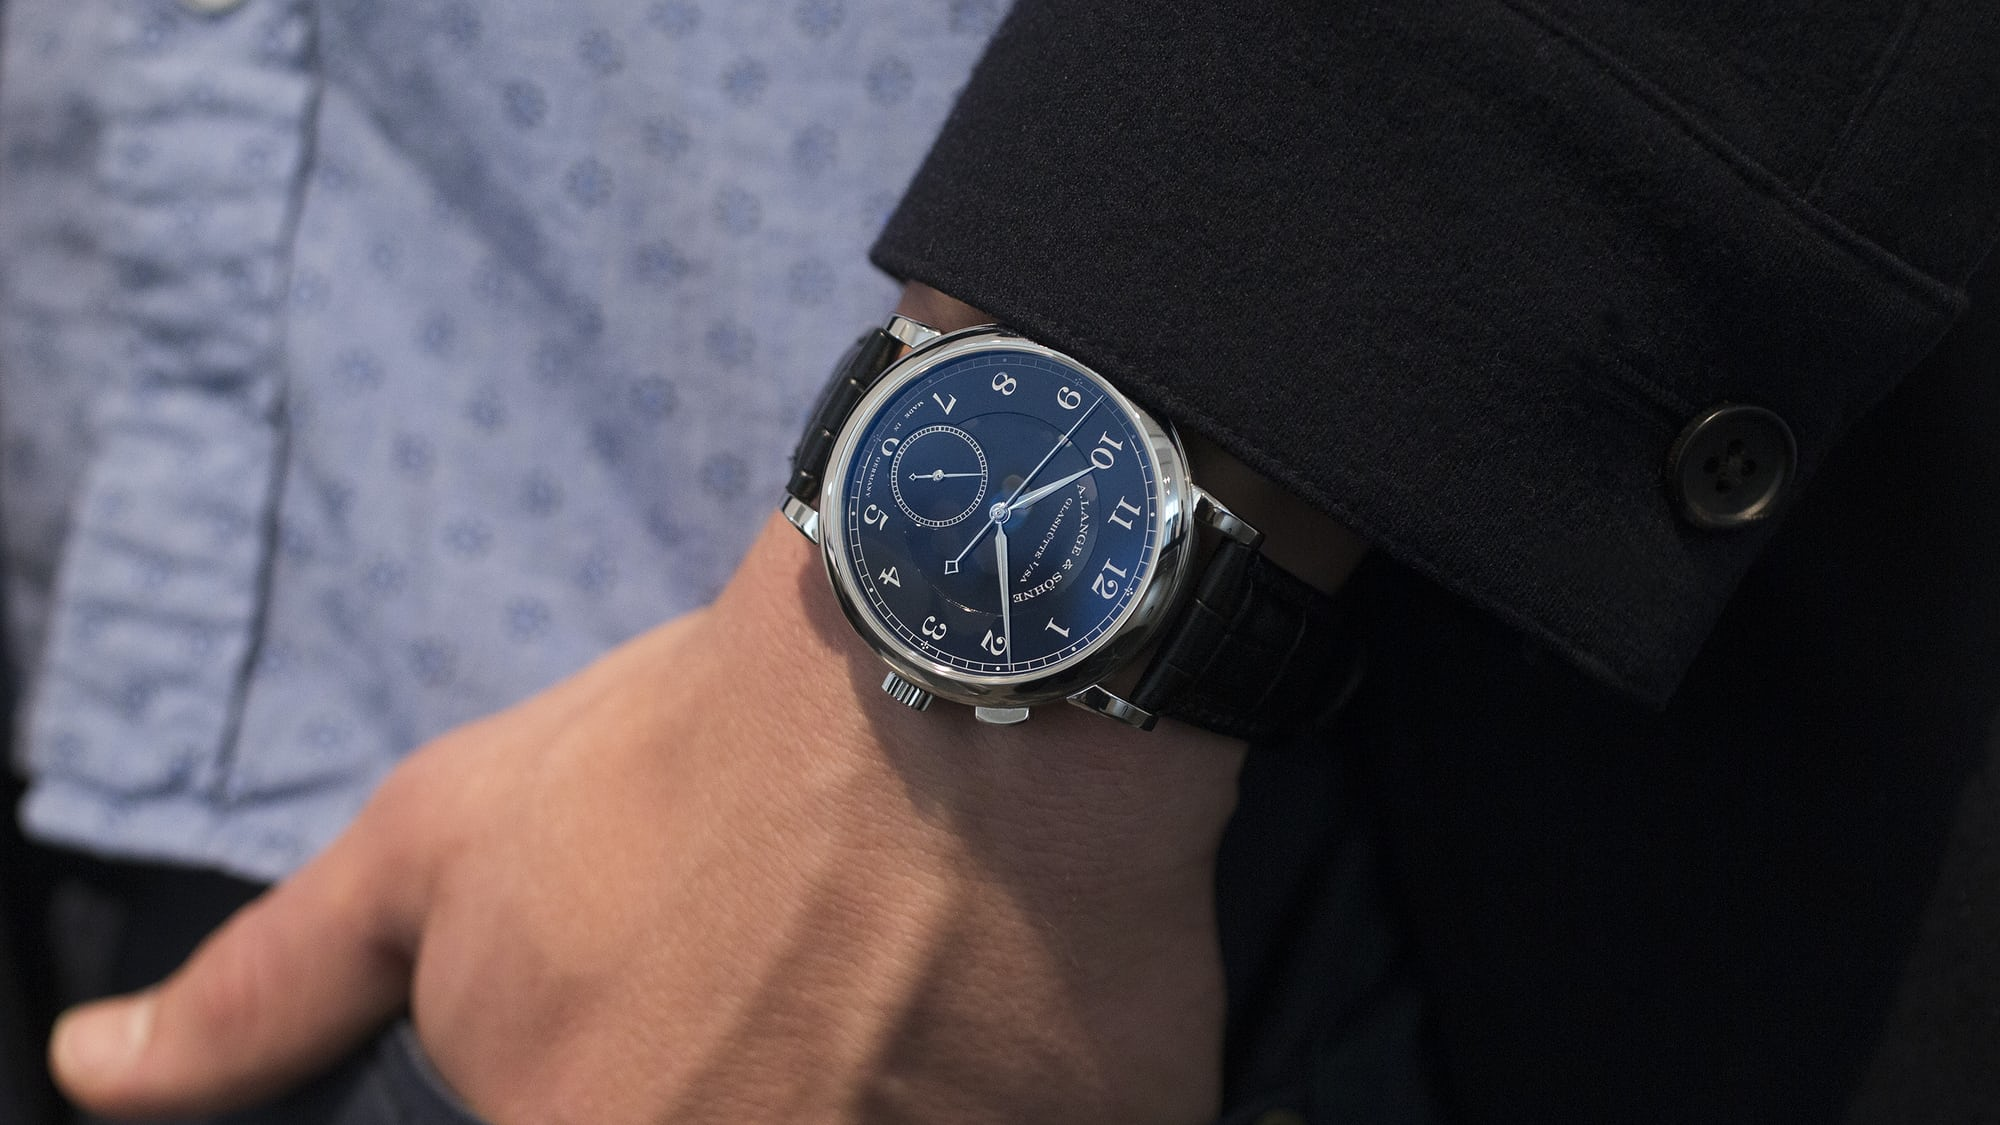 breaking news: unique a. lange & söhne 1815 'homage to walter lange' in stainless steel sells for $852,525 in geneva Breaking News: Unique A. Lange & Söhne 1815 'Homage To Walter Lange' In Stainless Steel Sells For $852,525 In Geneva 20015342 copy